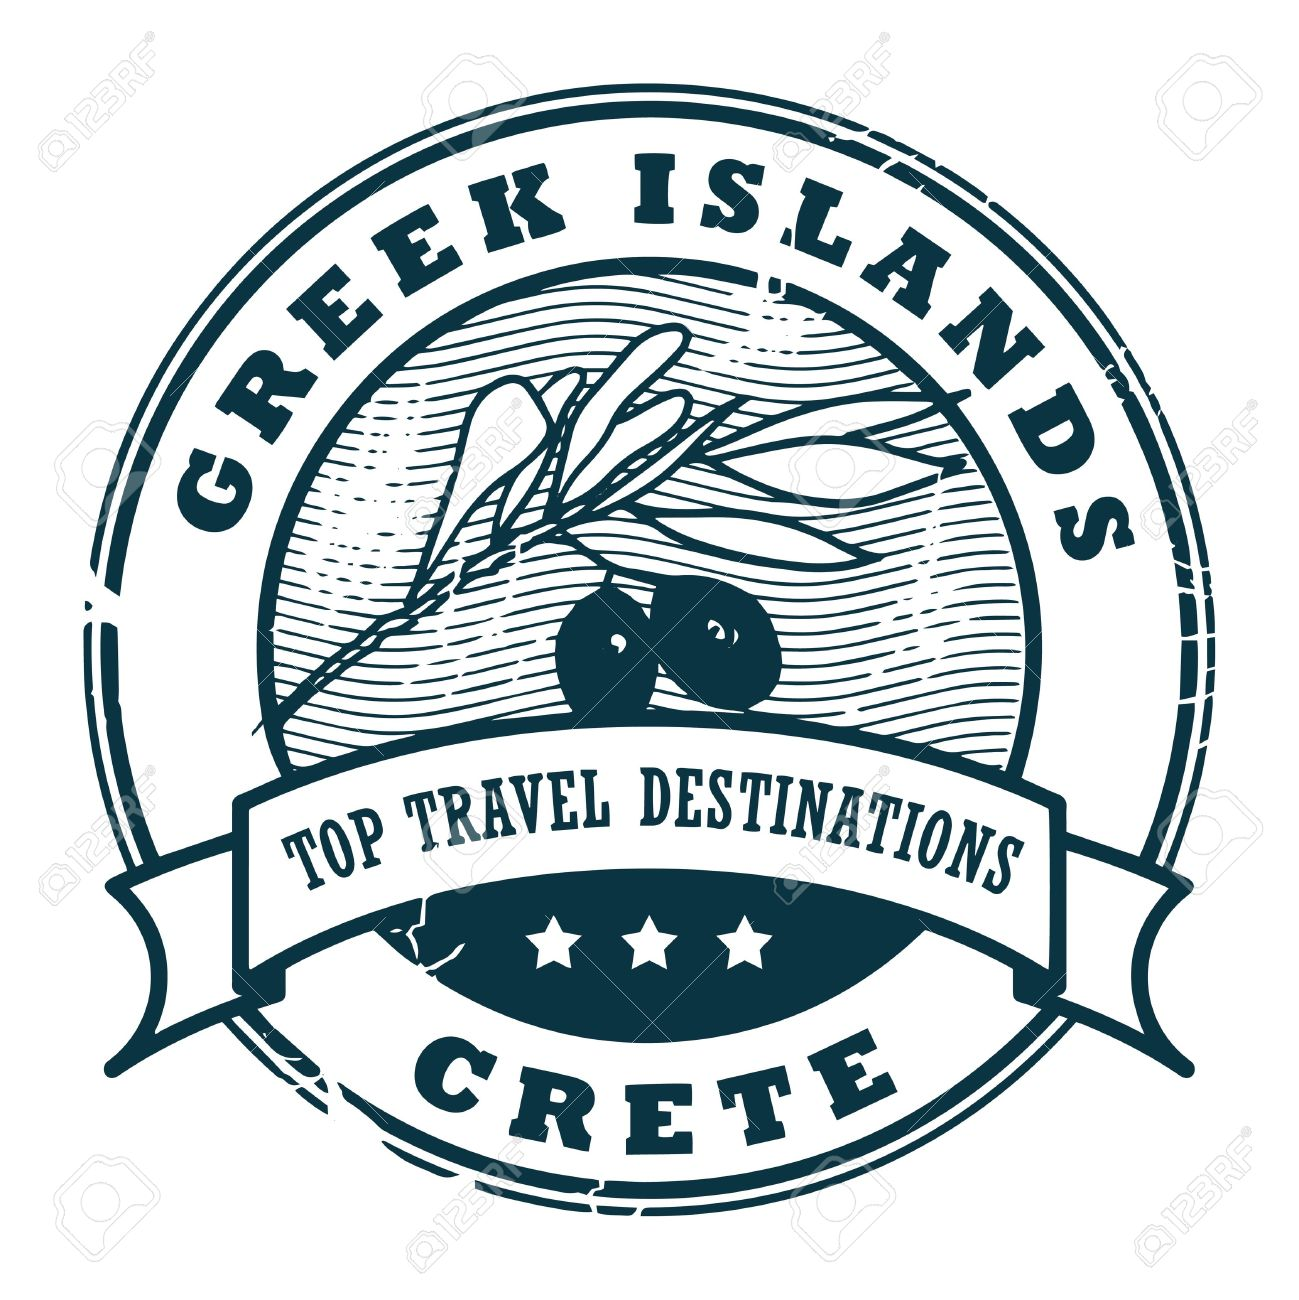 216 Crete Island Stock Illustrations, Cliparts And Royalty Free.